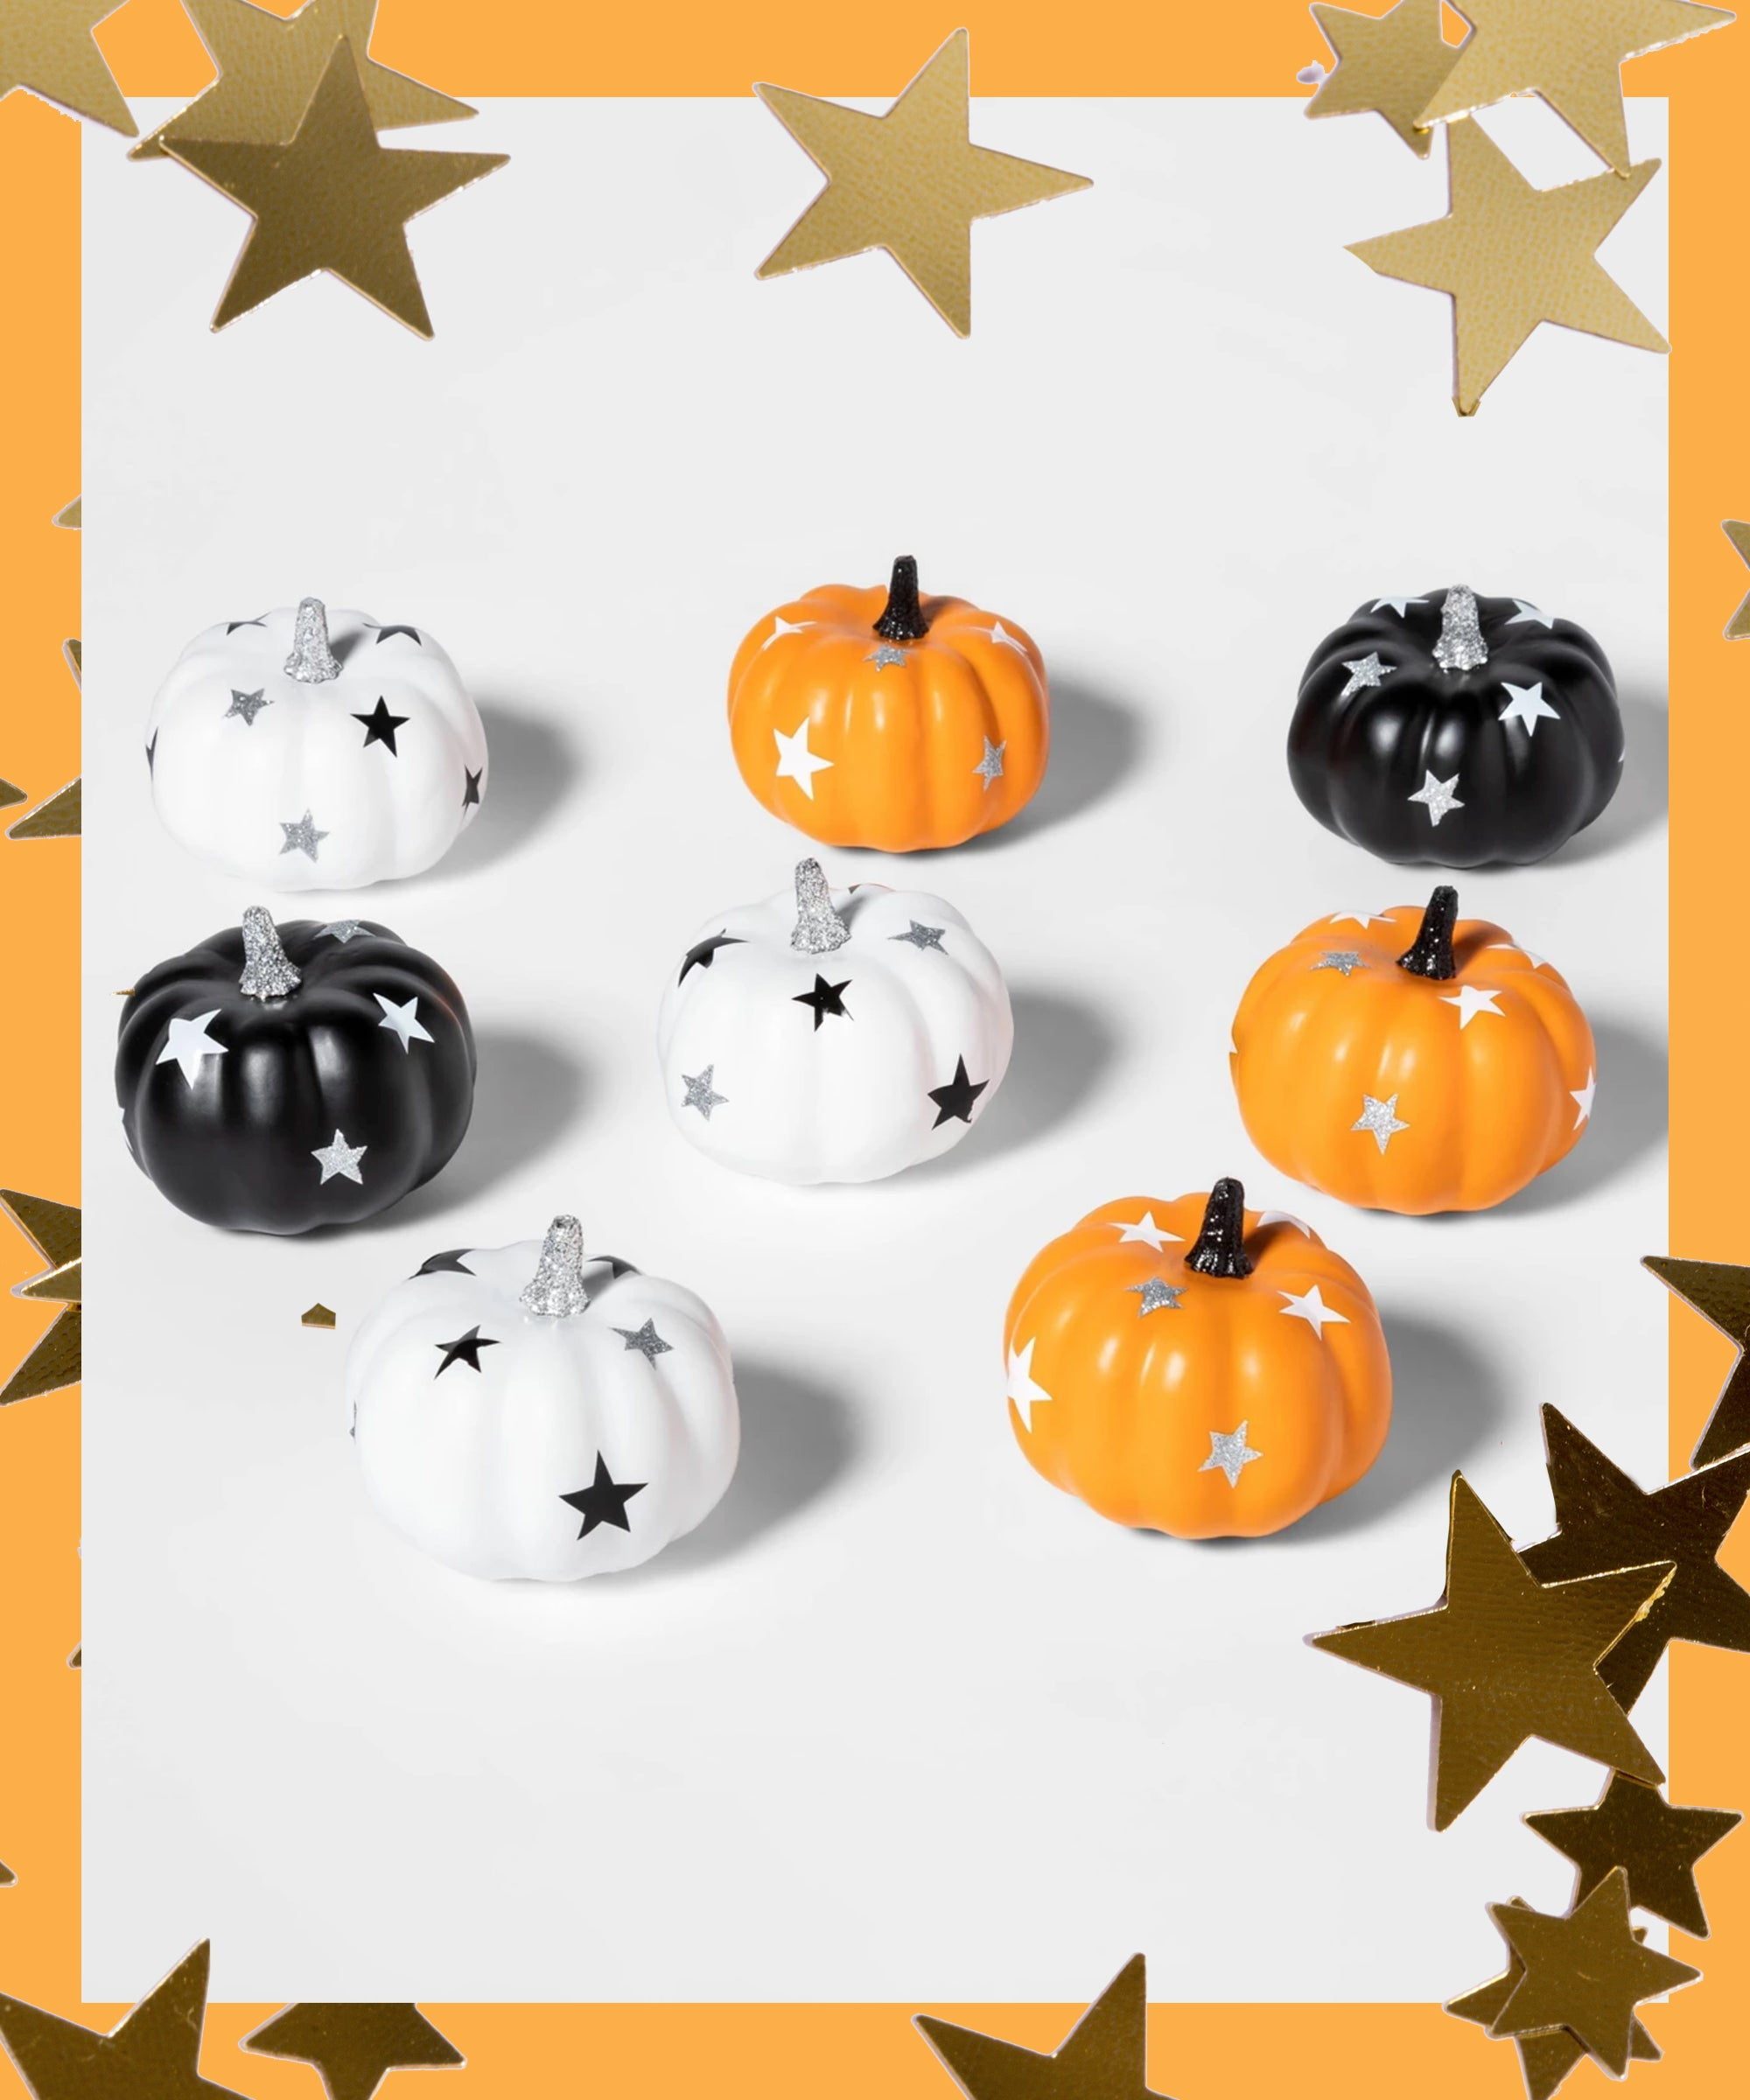 Target's Halloween Decorations Are Here — These Are The Best Spooky-Chic Buys